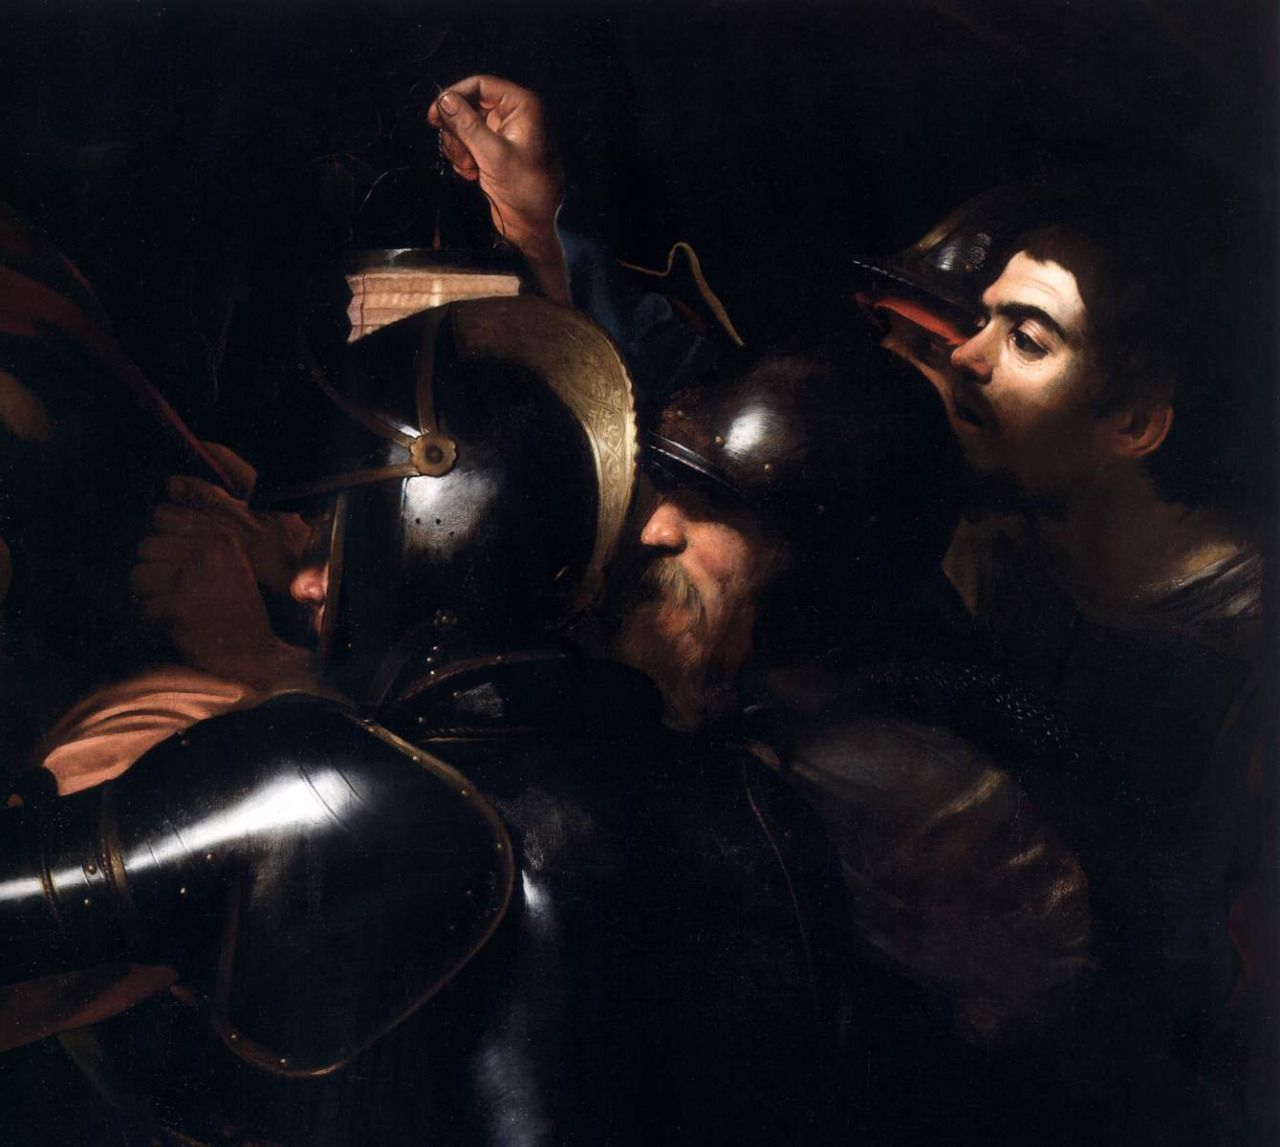 the taking of christ 80% off a hand made oil painting reproduction of the taking of christ c 1598, one of the most famous paintings by caravaggio free certificate of authenticity free shipping.